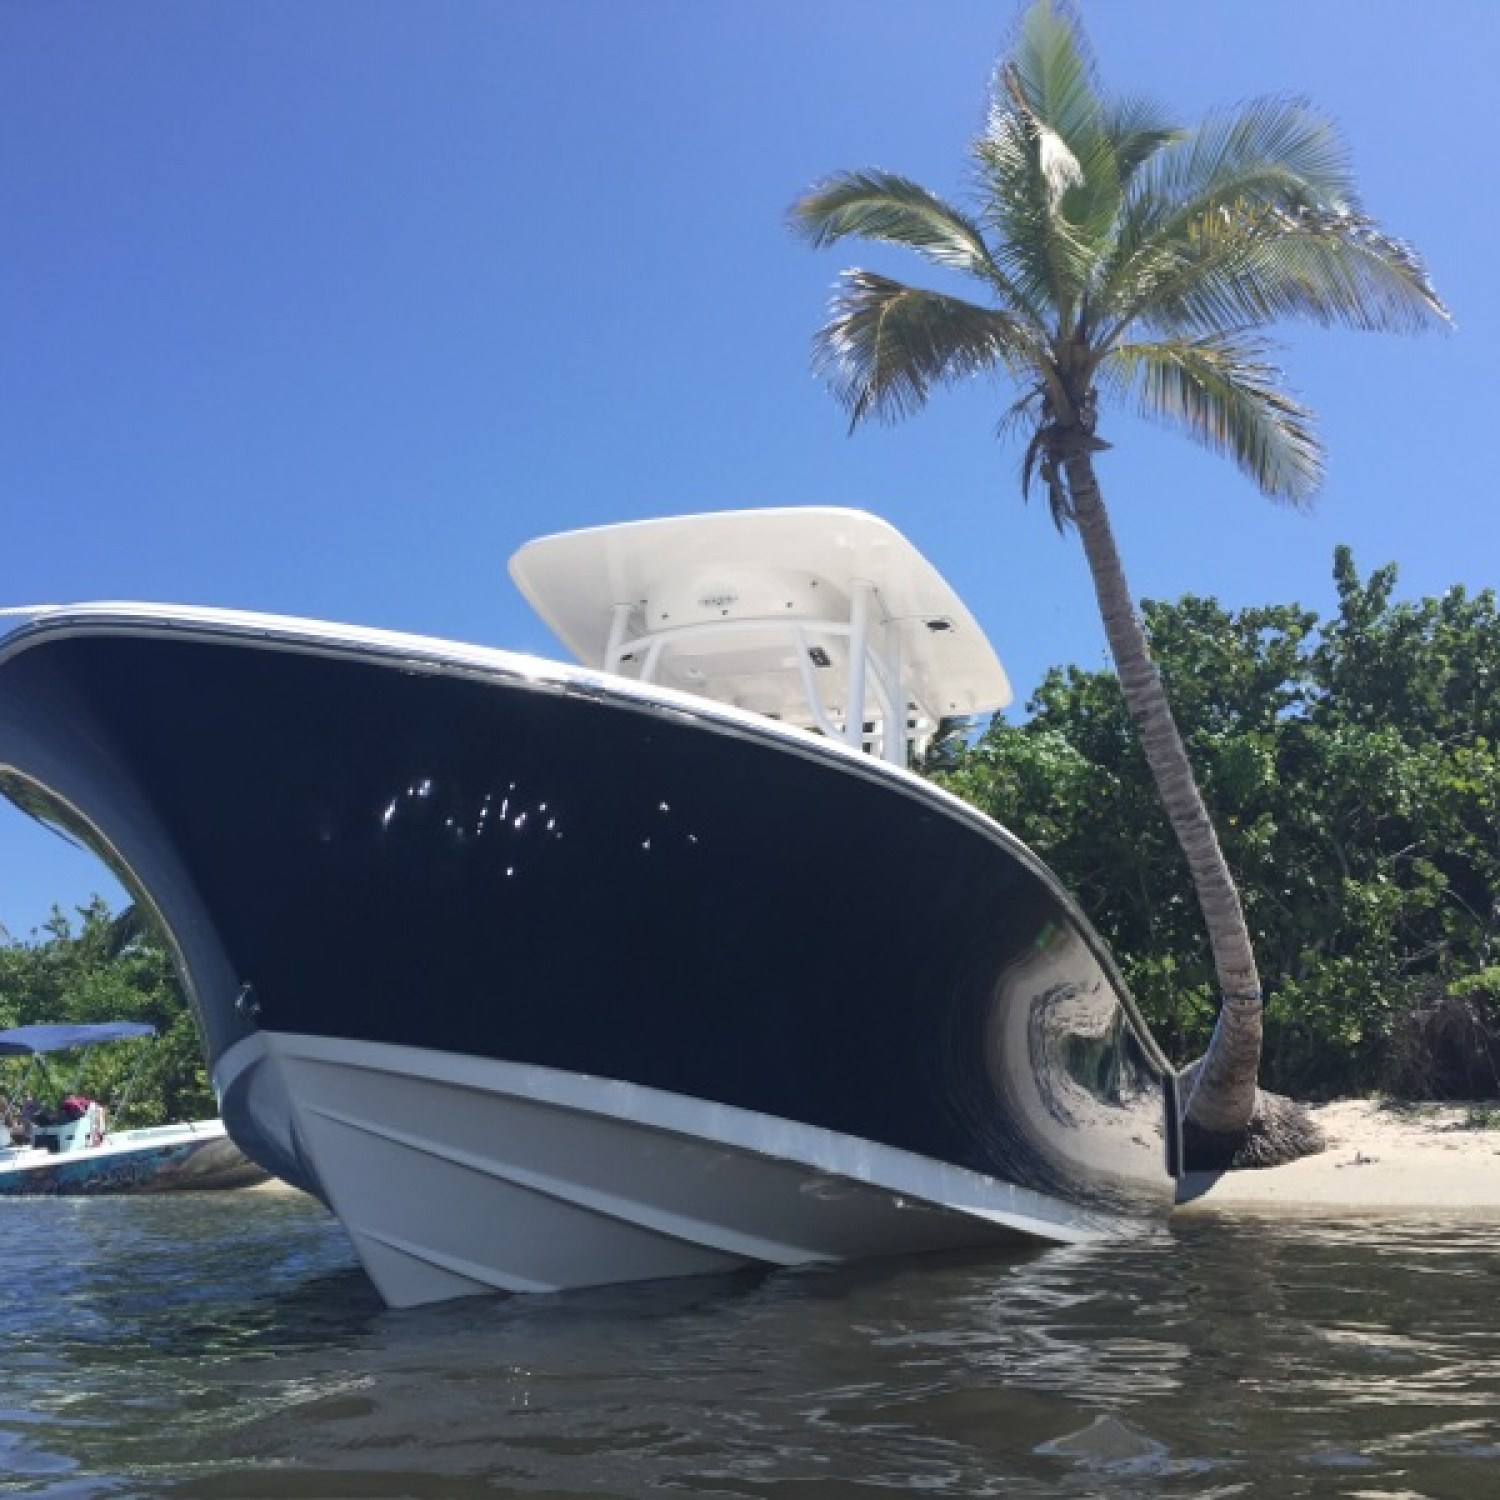 Title: My favorite parking spot! - On board their Sportsman Heritage 231 Center Console - Location: Stuart, FL. Participating in the Photo Contest #SportsmanNovember2017